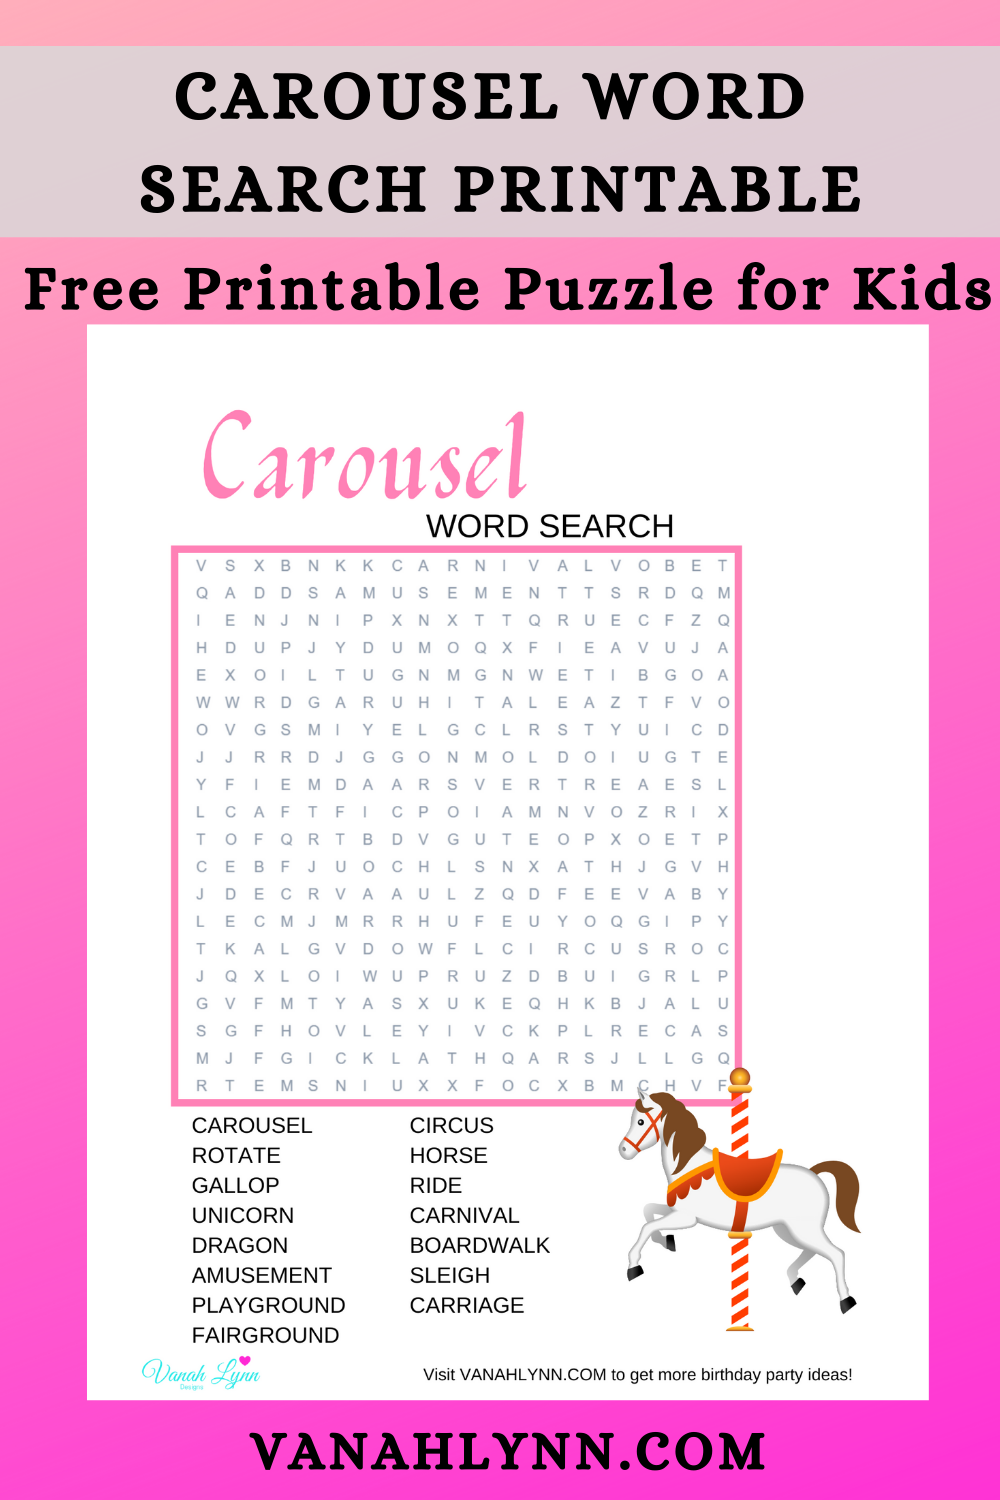 carousel activity sheet ideas for birthday party